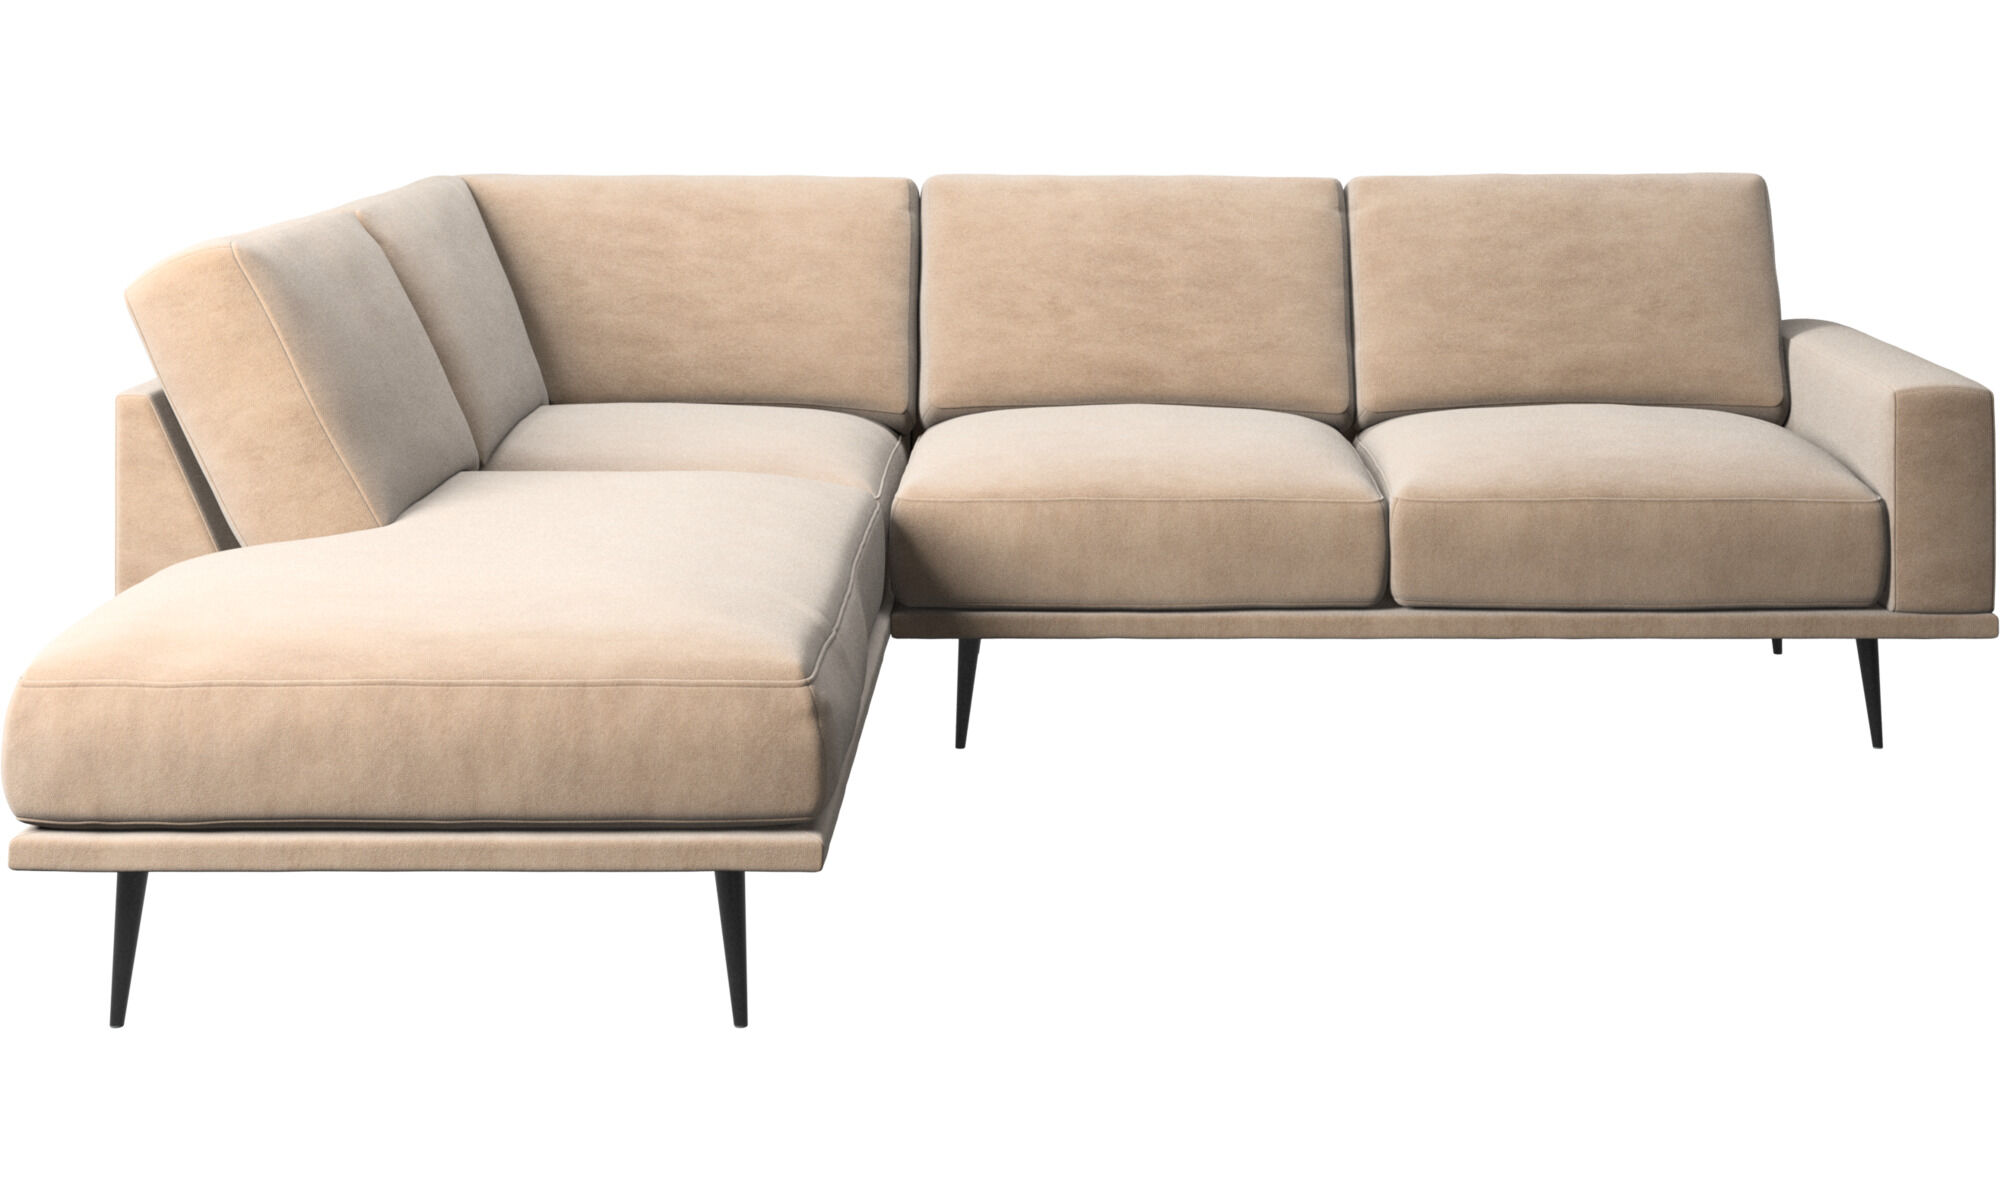 Superb Sofas With Open End   Carlton Sofa With Lounging Units   Beige   Fabric